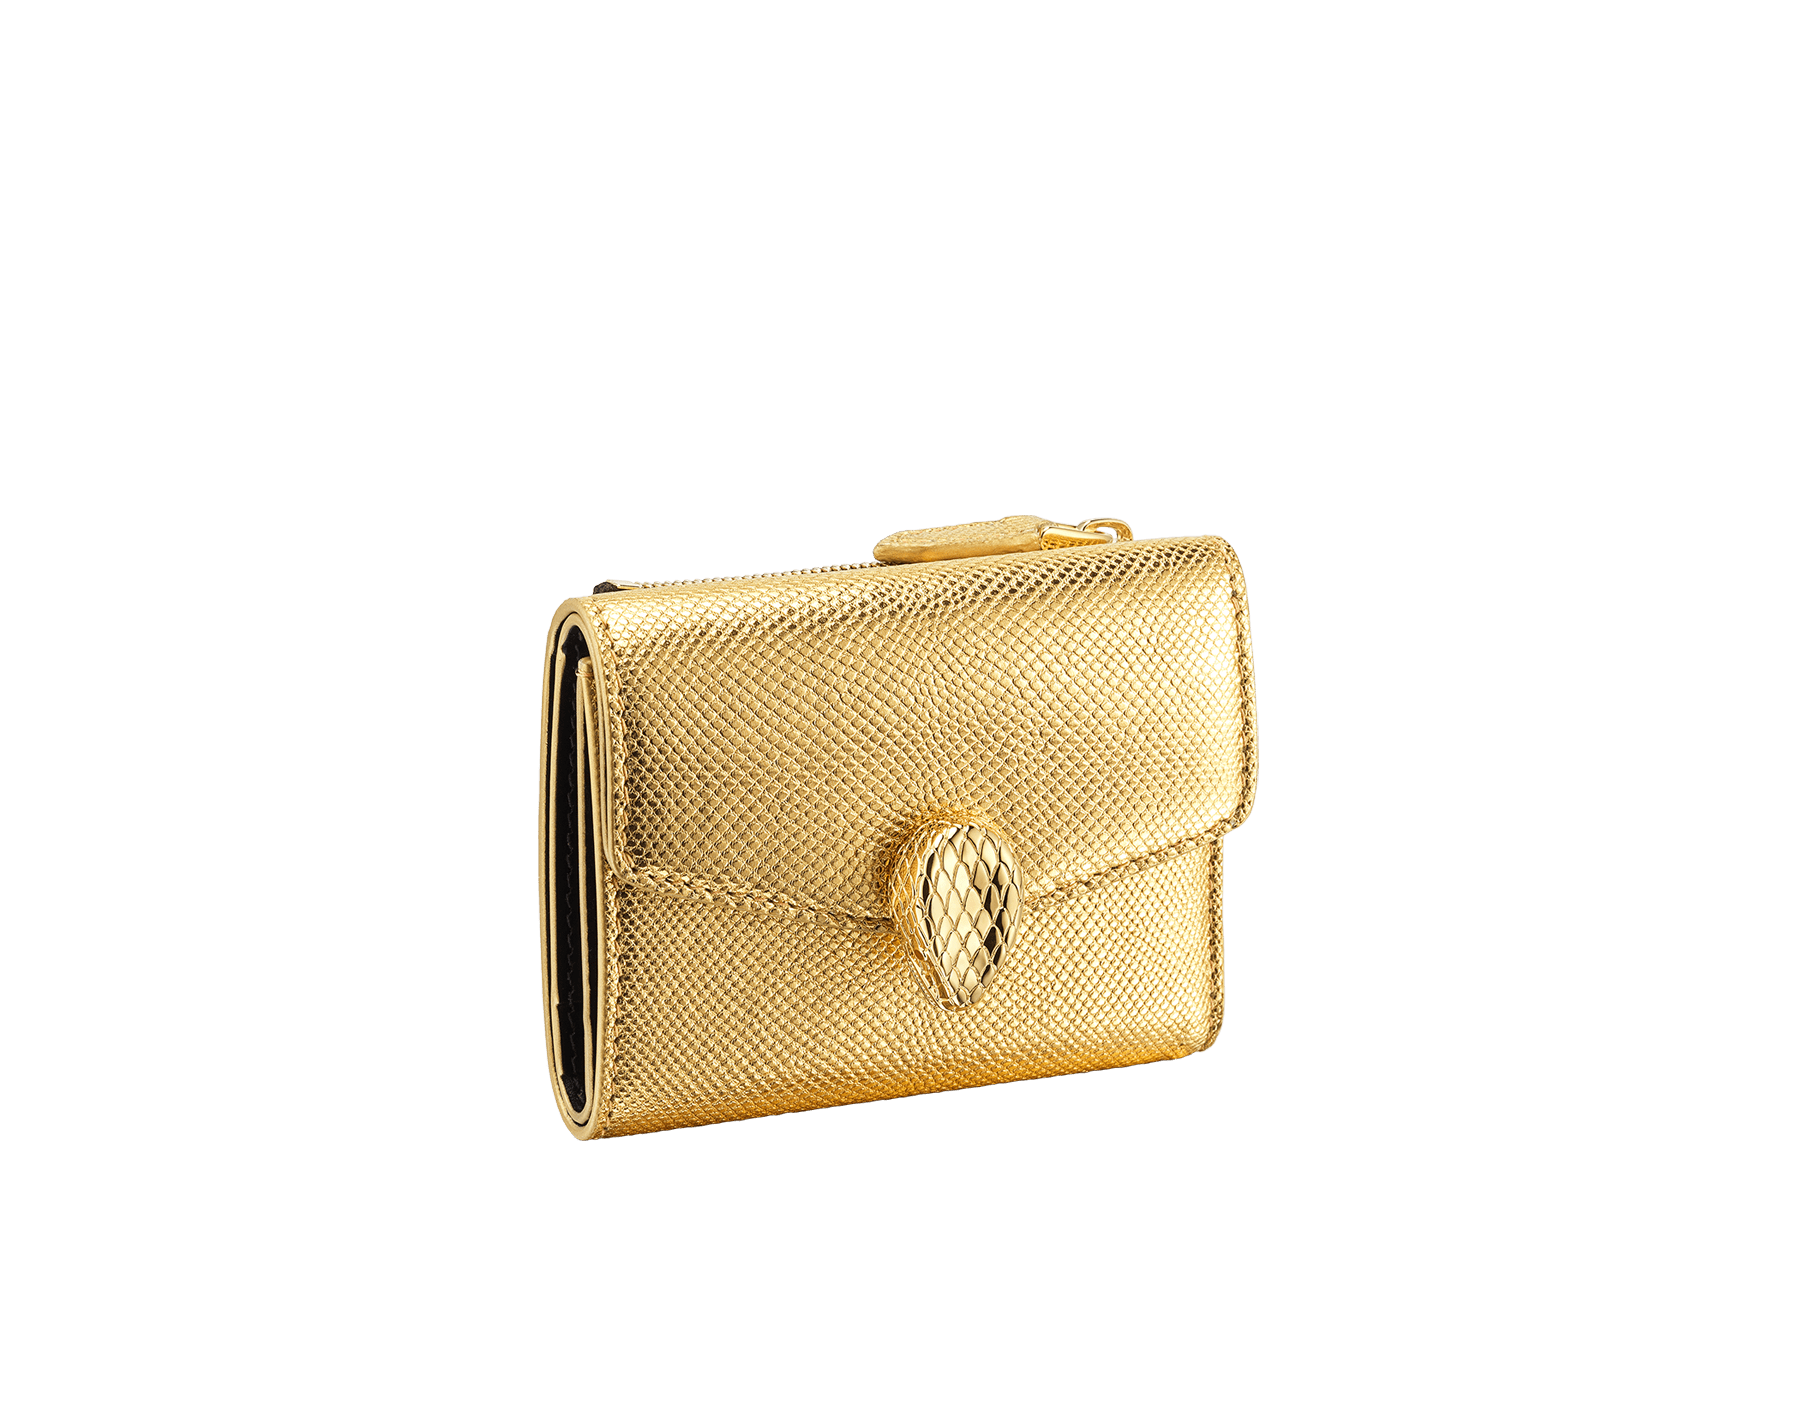 "Slender, compact ""Serpenti Forever"" wallet in ""Molten"" gold karung skin and black calfskin, offering a touch of radiance for the Winter Holidays. New Serpenti head closure in gold-plated brass, complete with ruby-red enamel eyes. SEA-SLIMCOMPACT-MoltK image 1"